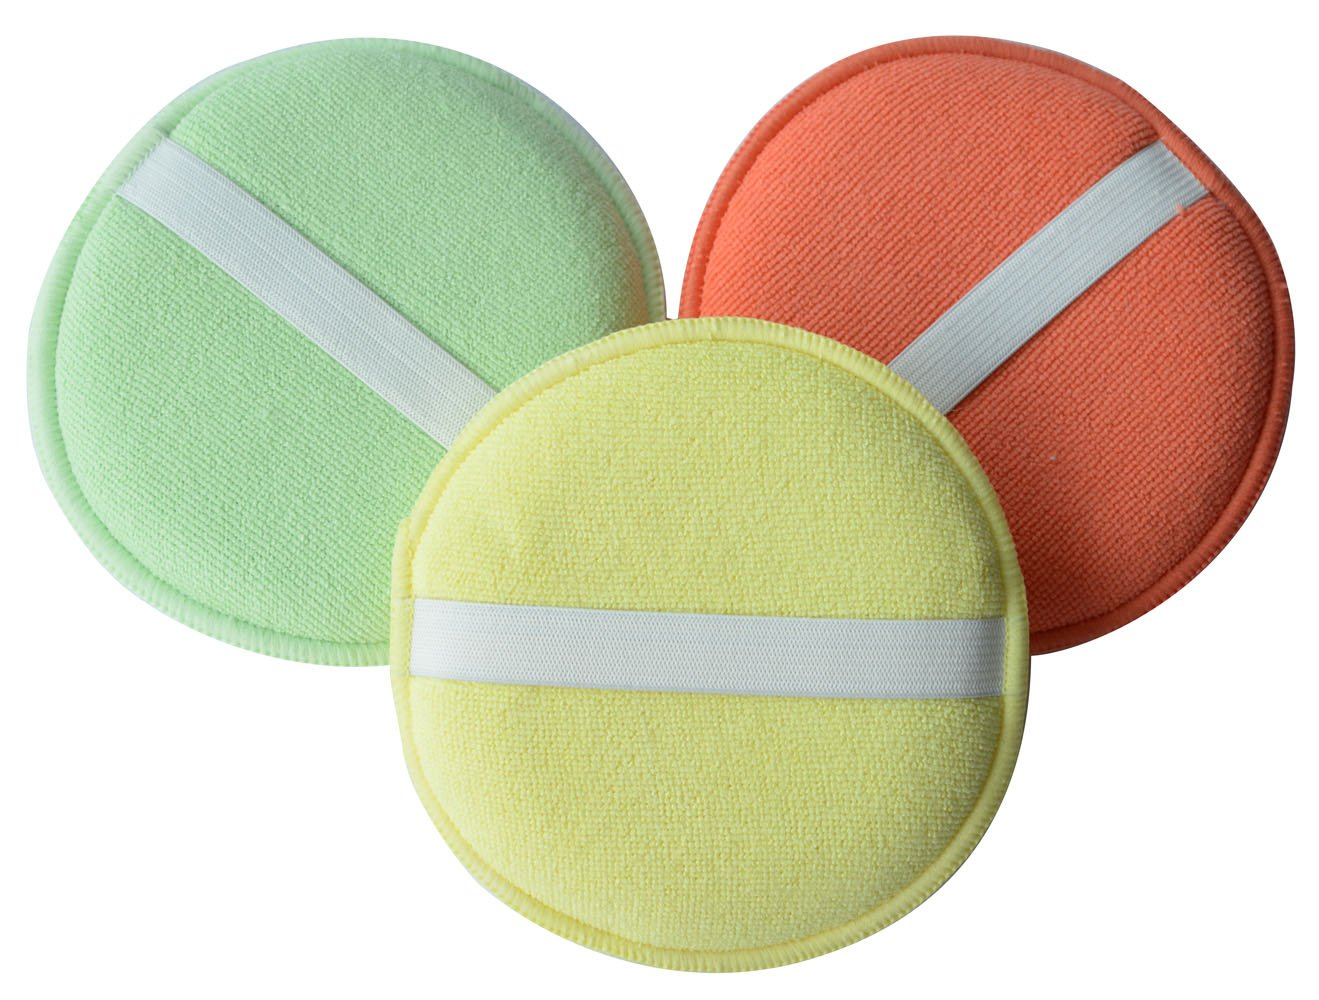 Sinland Microfiber Sponge Polishing Applicator Pads Car Detailing Polish Waxing Sponge (3 Pack) 4333116405